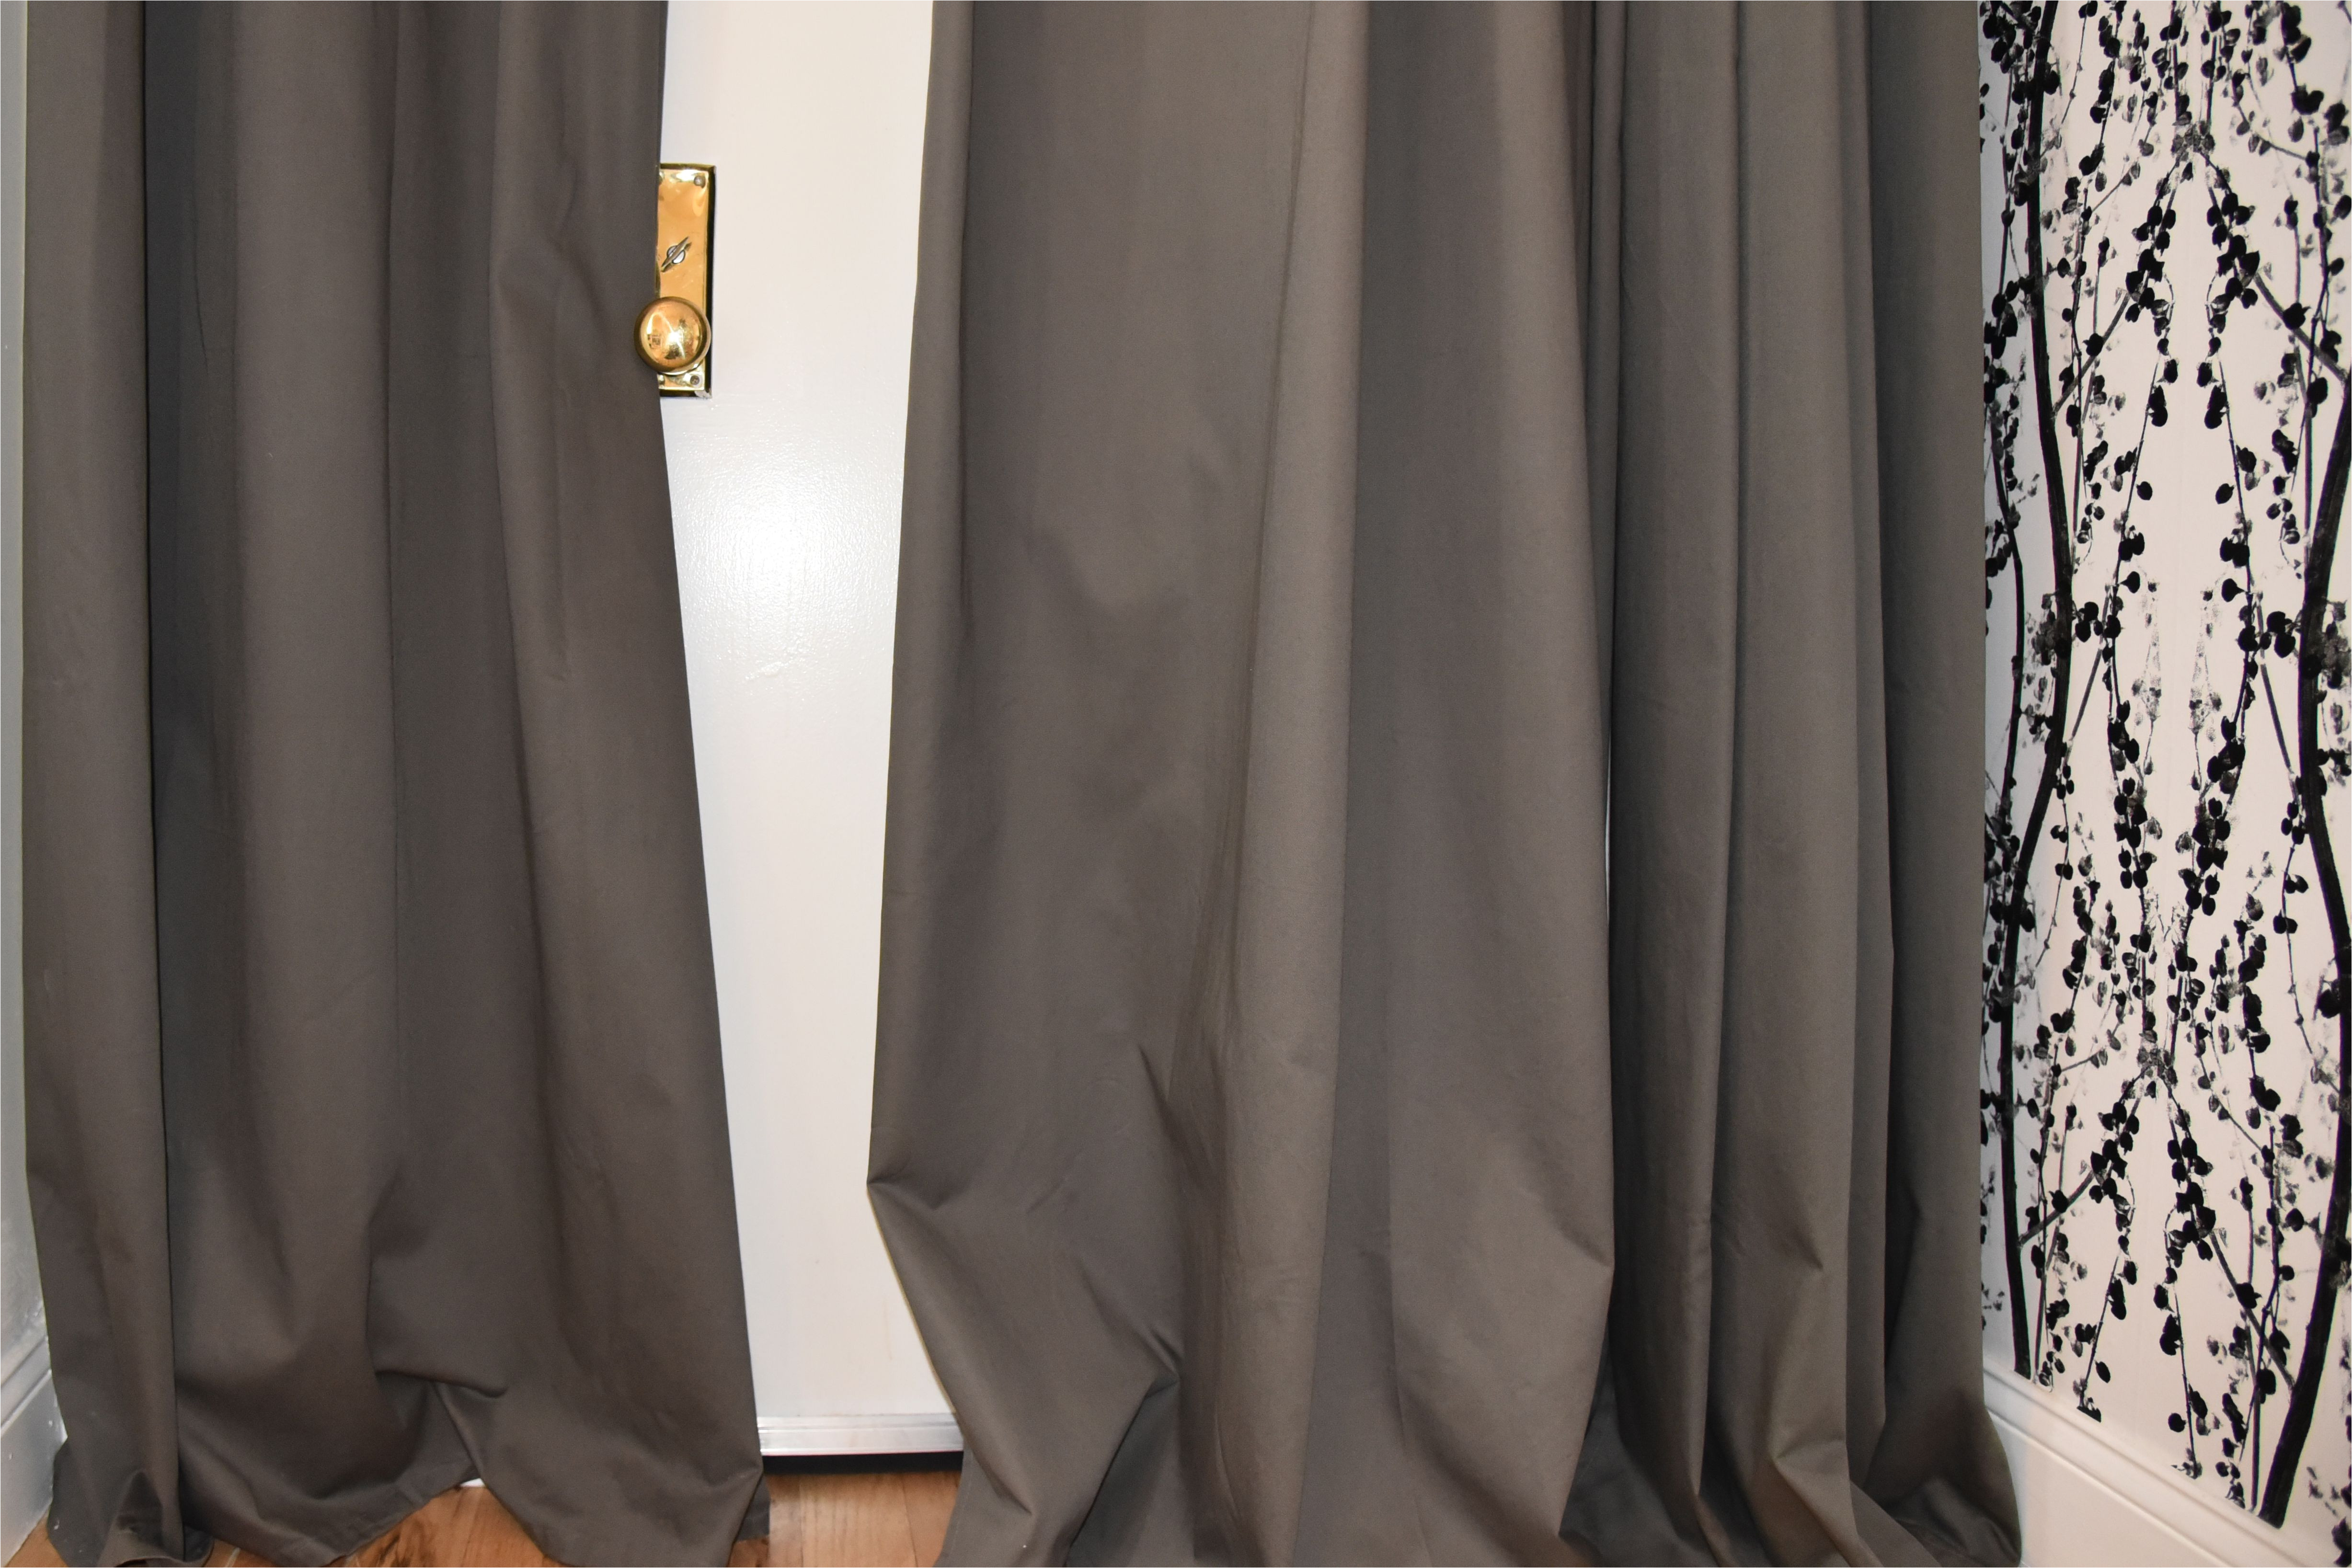 Soundproof Room Divider Curtain Easy Ways to soundproof Your Room or Apartment